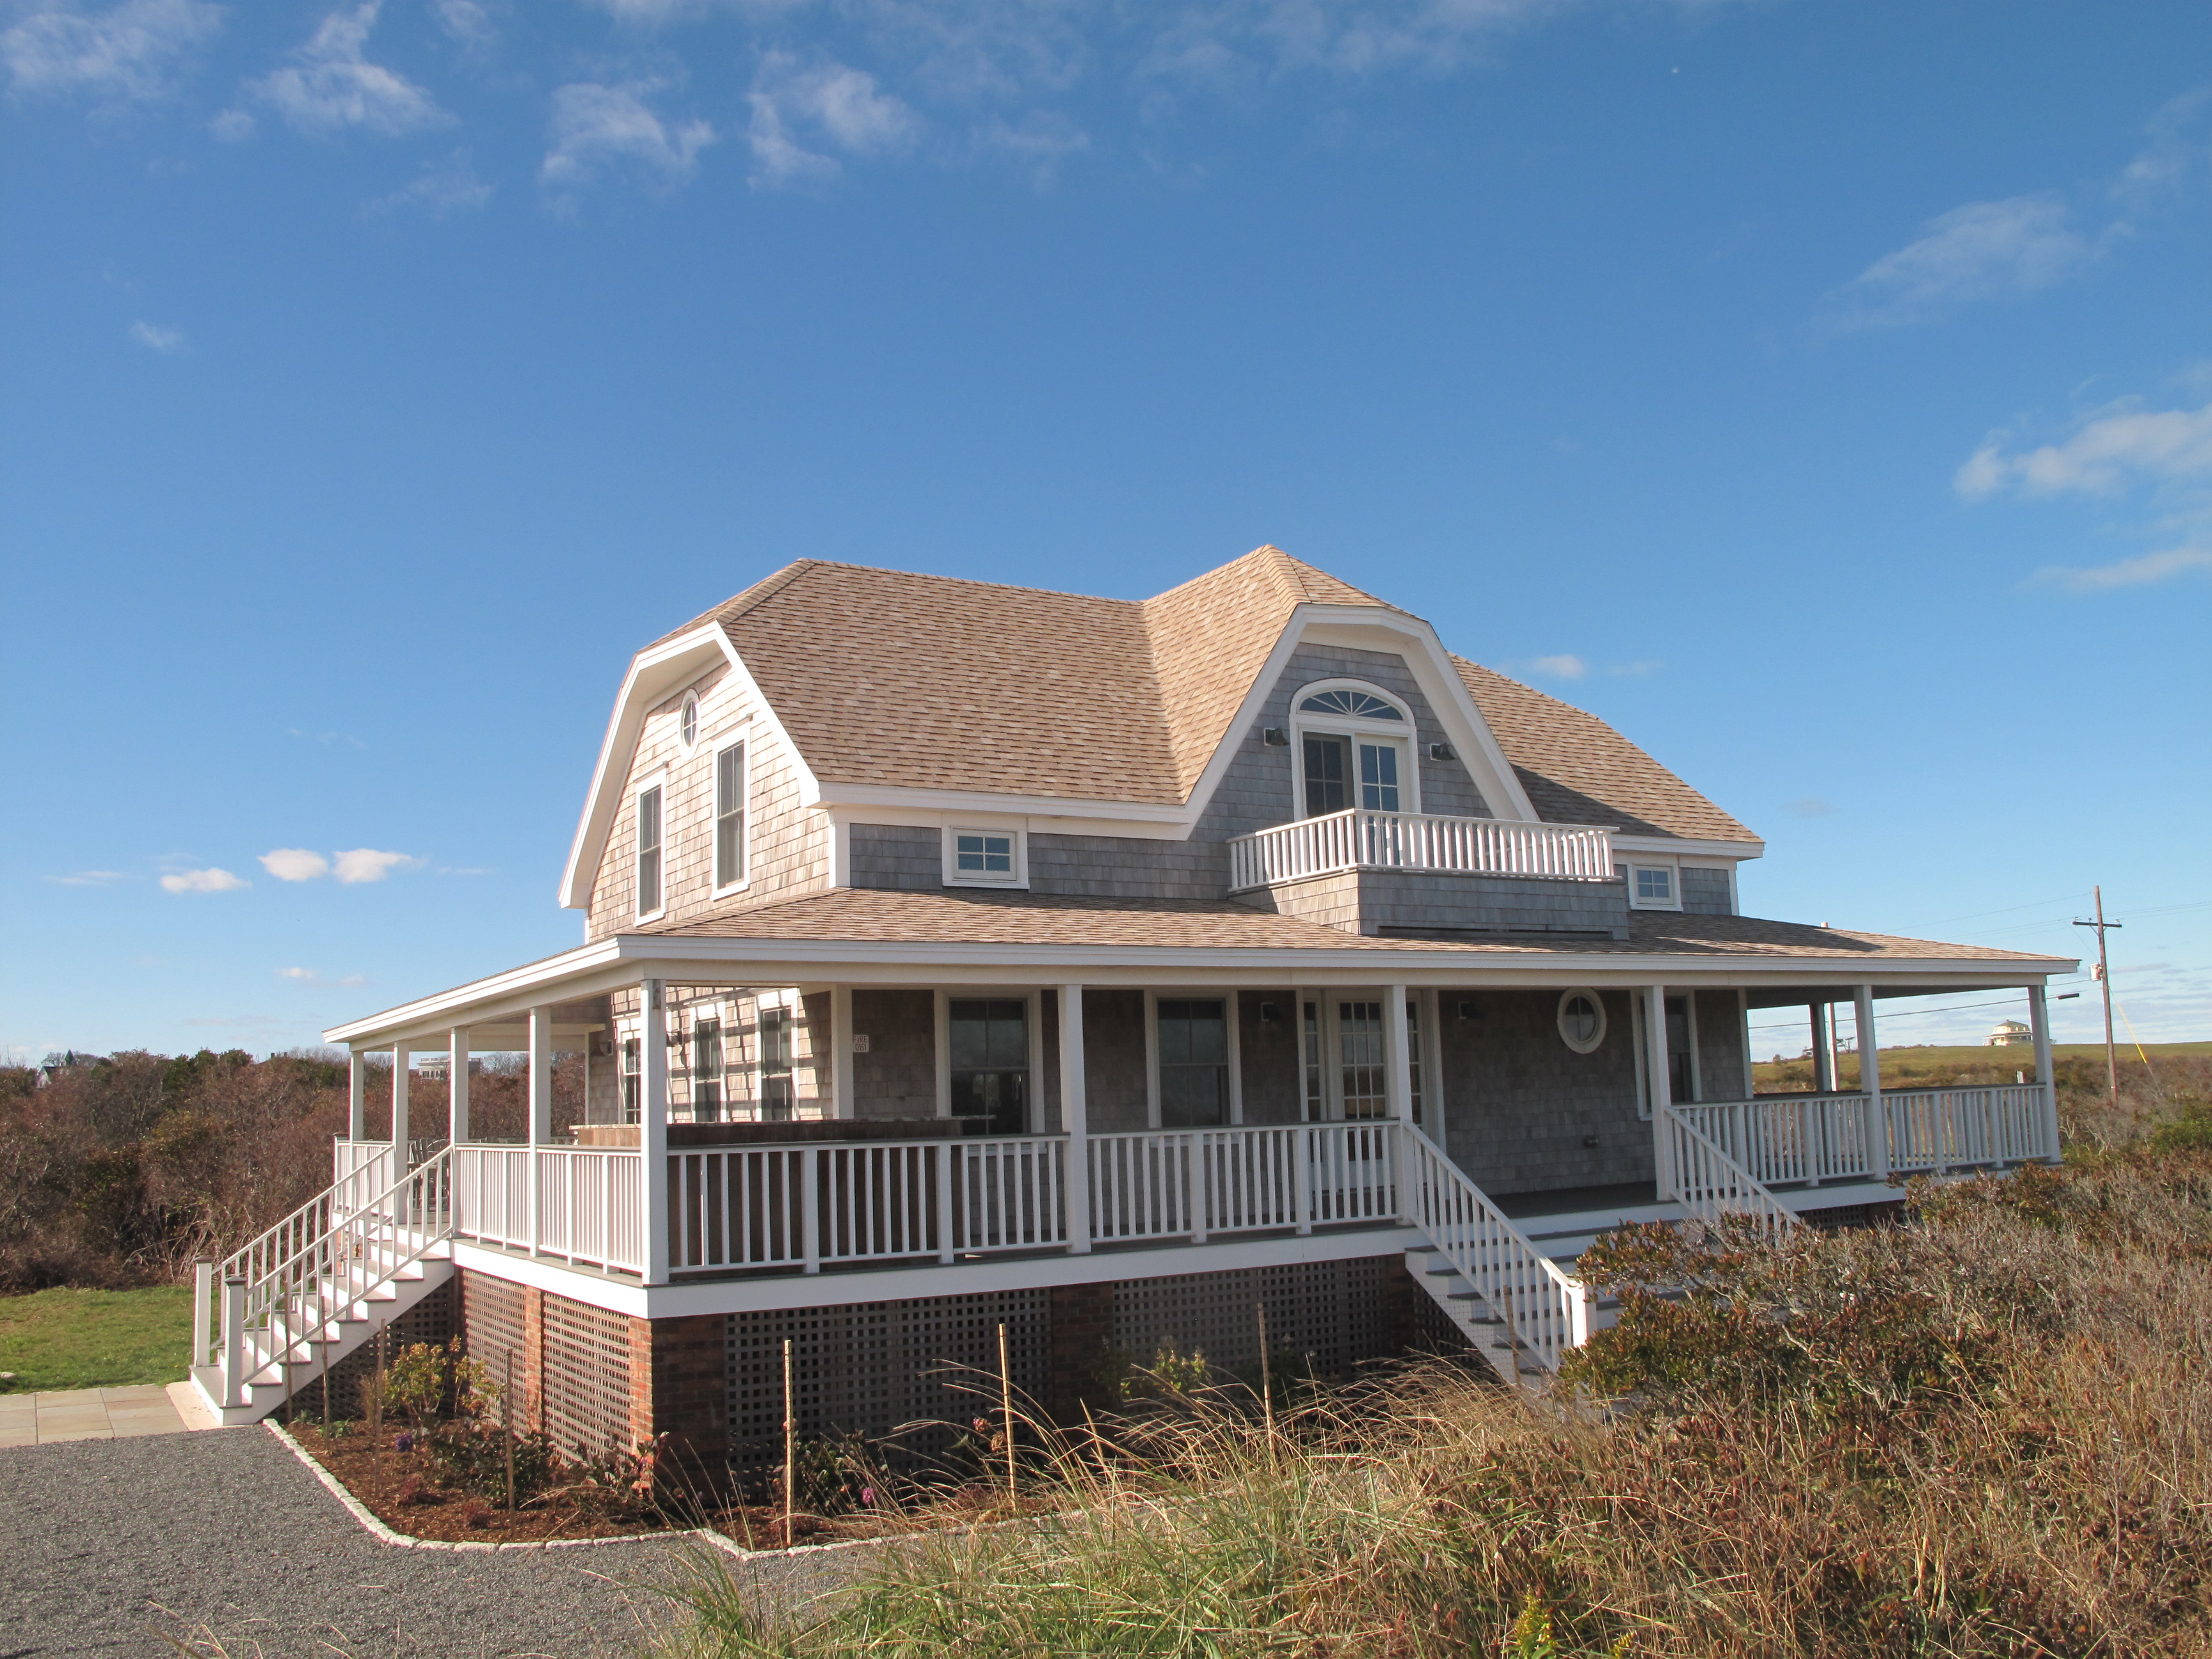 Single Family Home for Sale at Bauer 151 Corn Neck Road Block Island, Rhode Island, 02807 United States